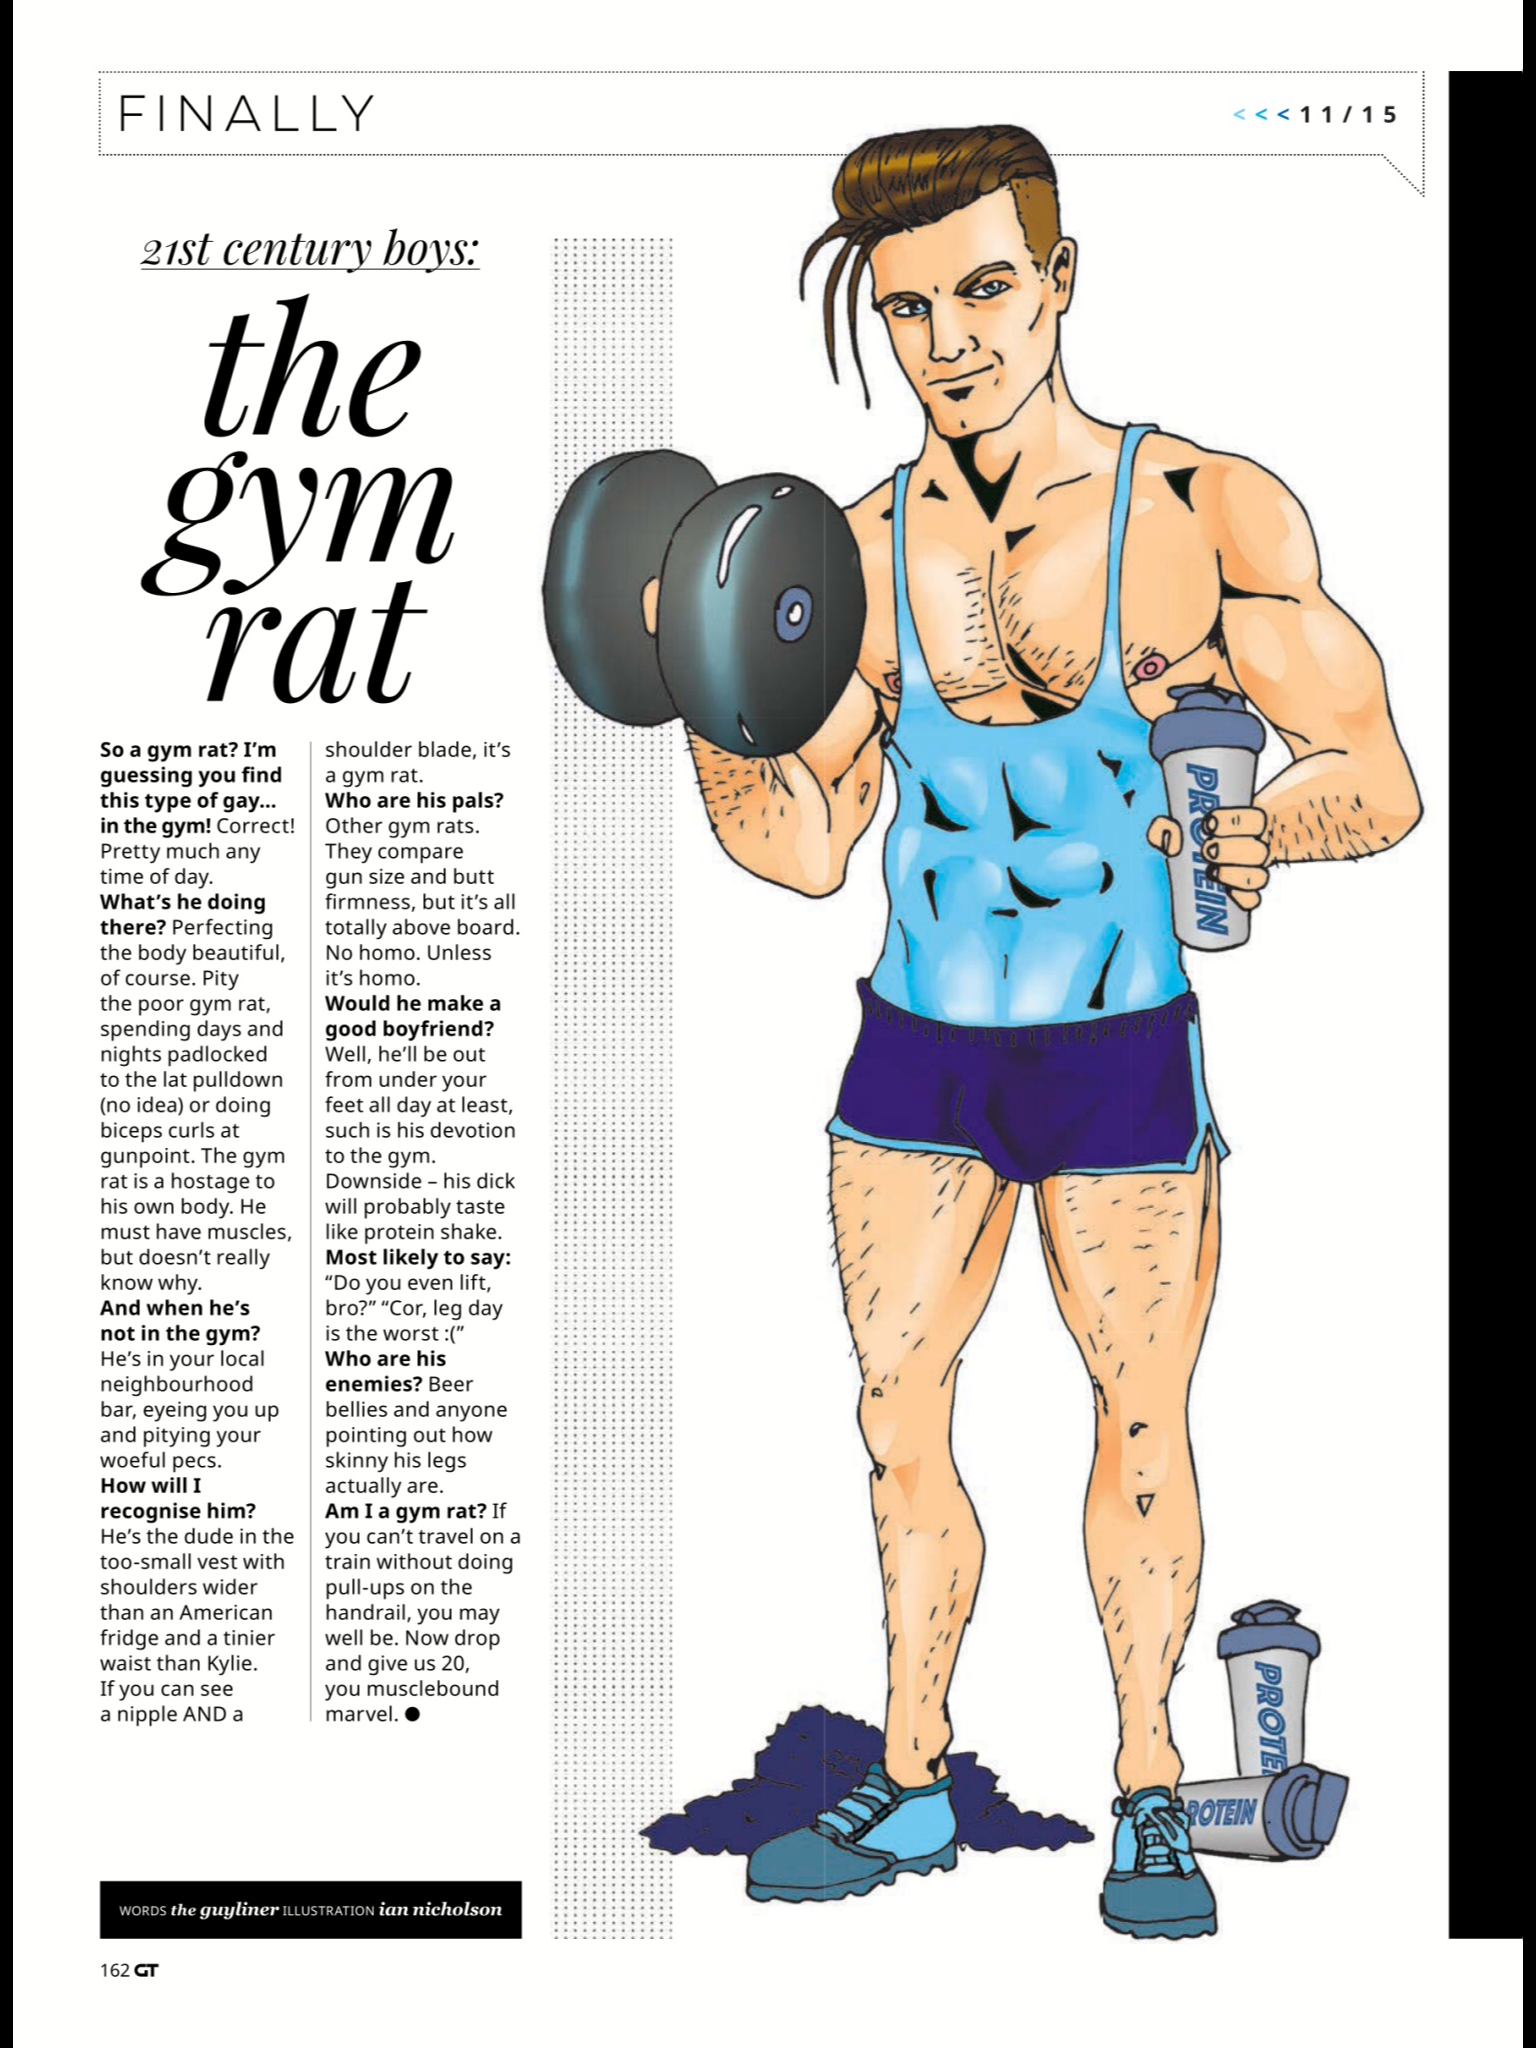 Illustration #1 The Gym Rat